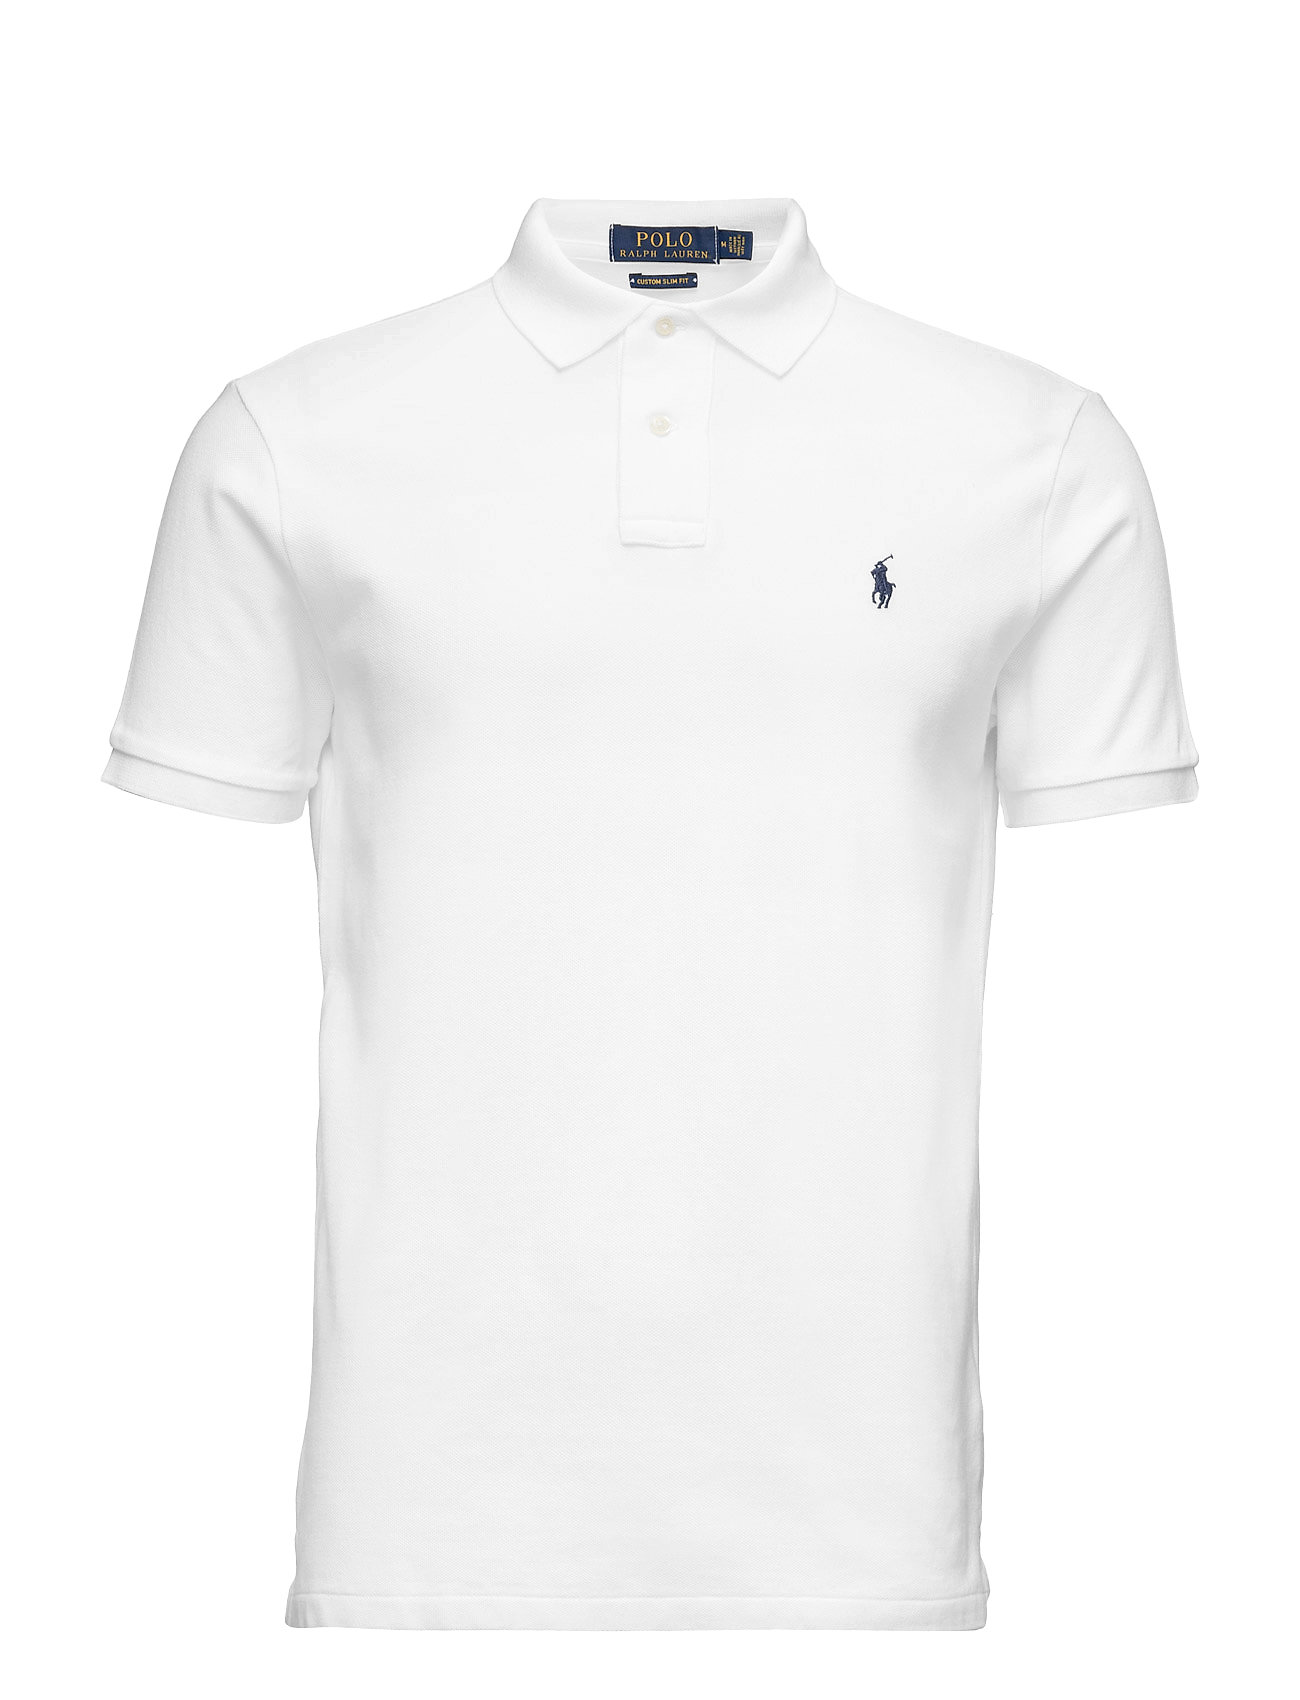 2e93dcb7 ... 2034f30c4 Custom Slim Fit Cotton Mesh Polo (White) (£75) - Polo;  d4cff3af5 Polo Ralph Lauren; 053247ffb Polo Ralph ...